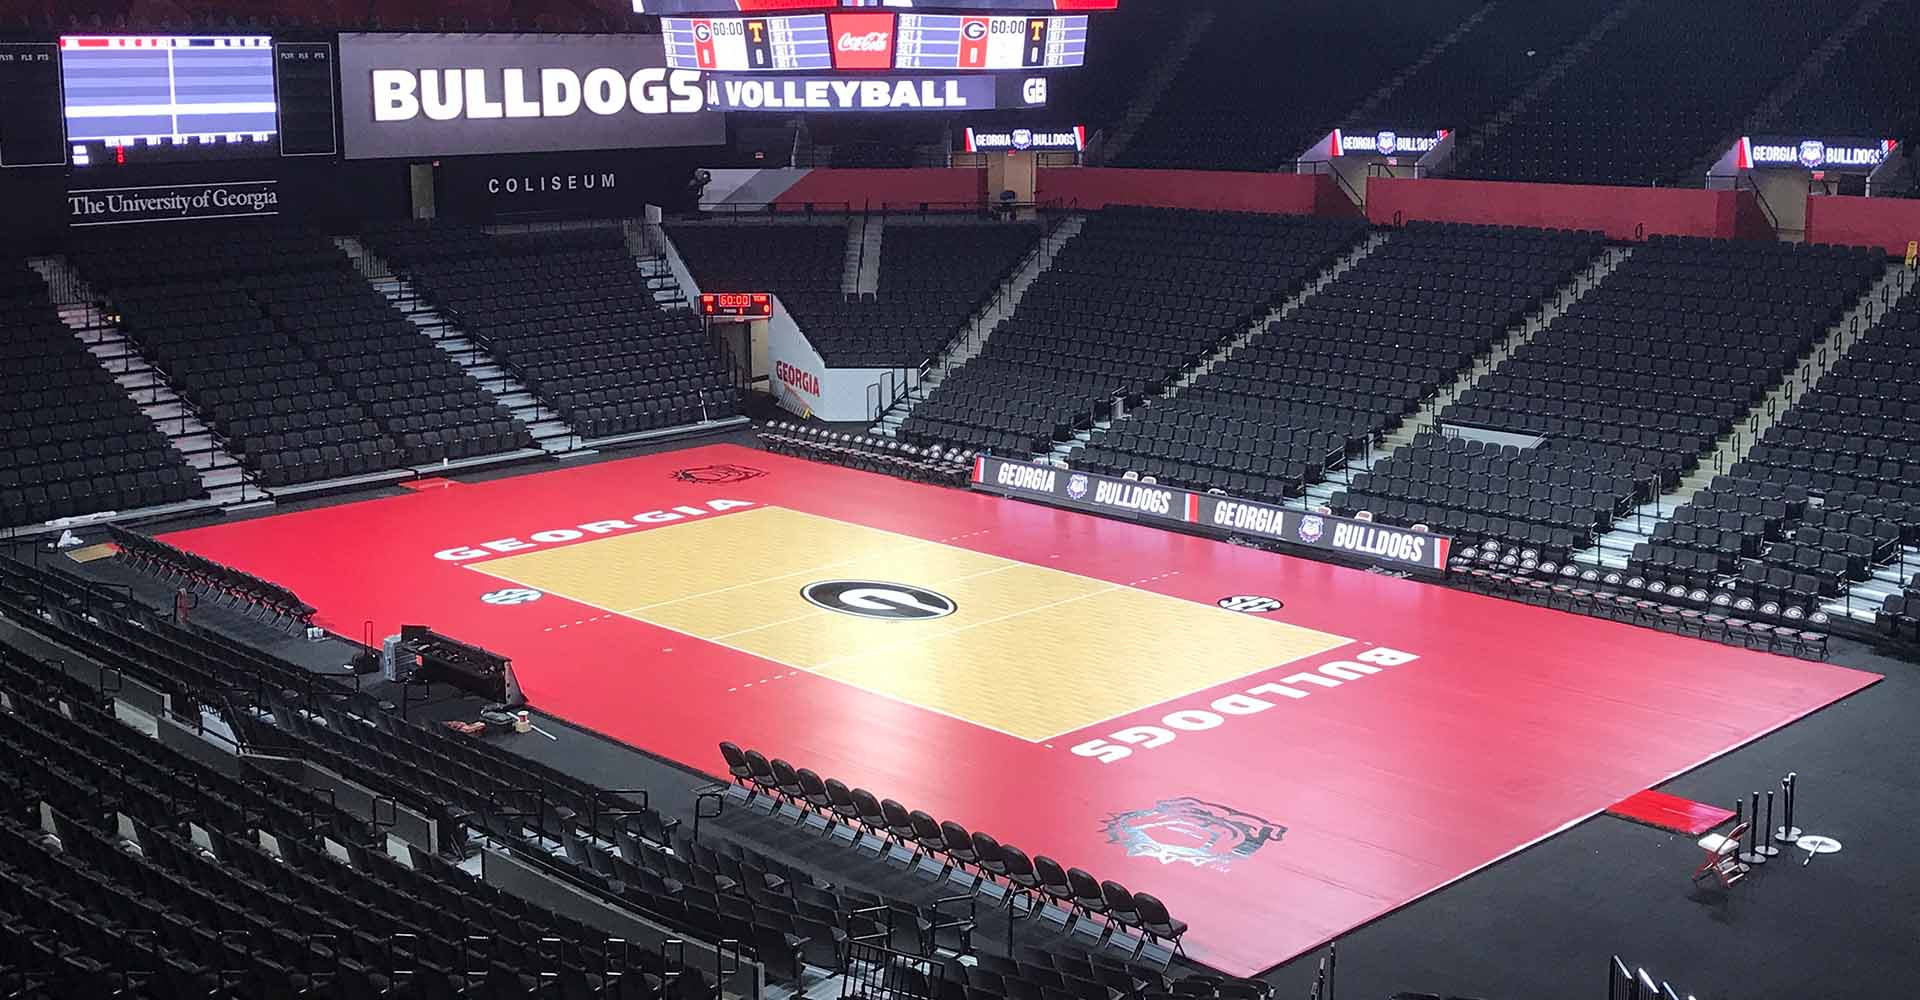 Bulldogs Volleyball Court Floor Surface and Spectator Seating